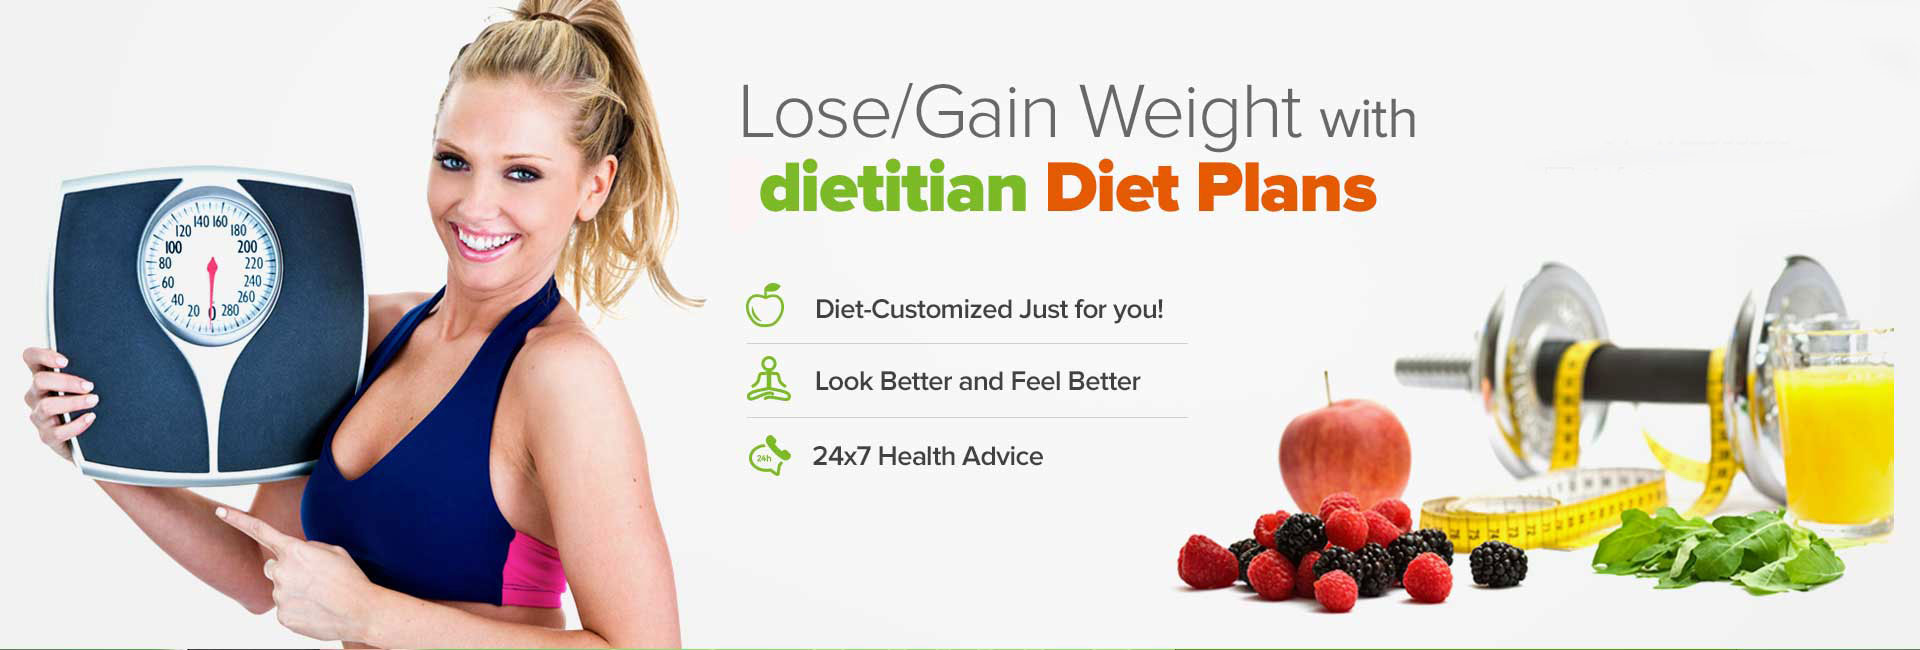 Diet Plan For Weight Loss In Kingston